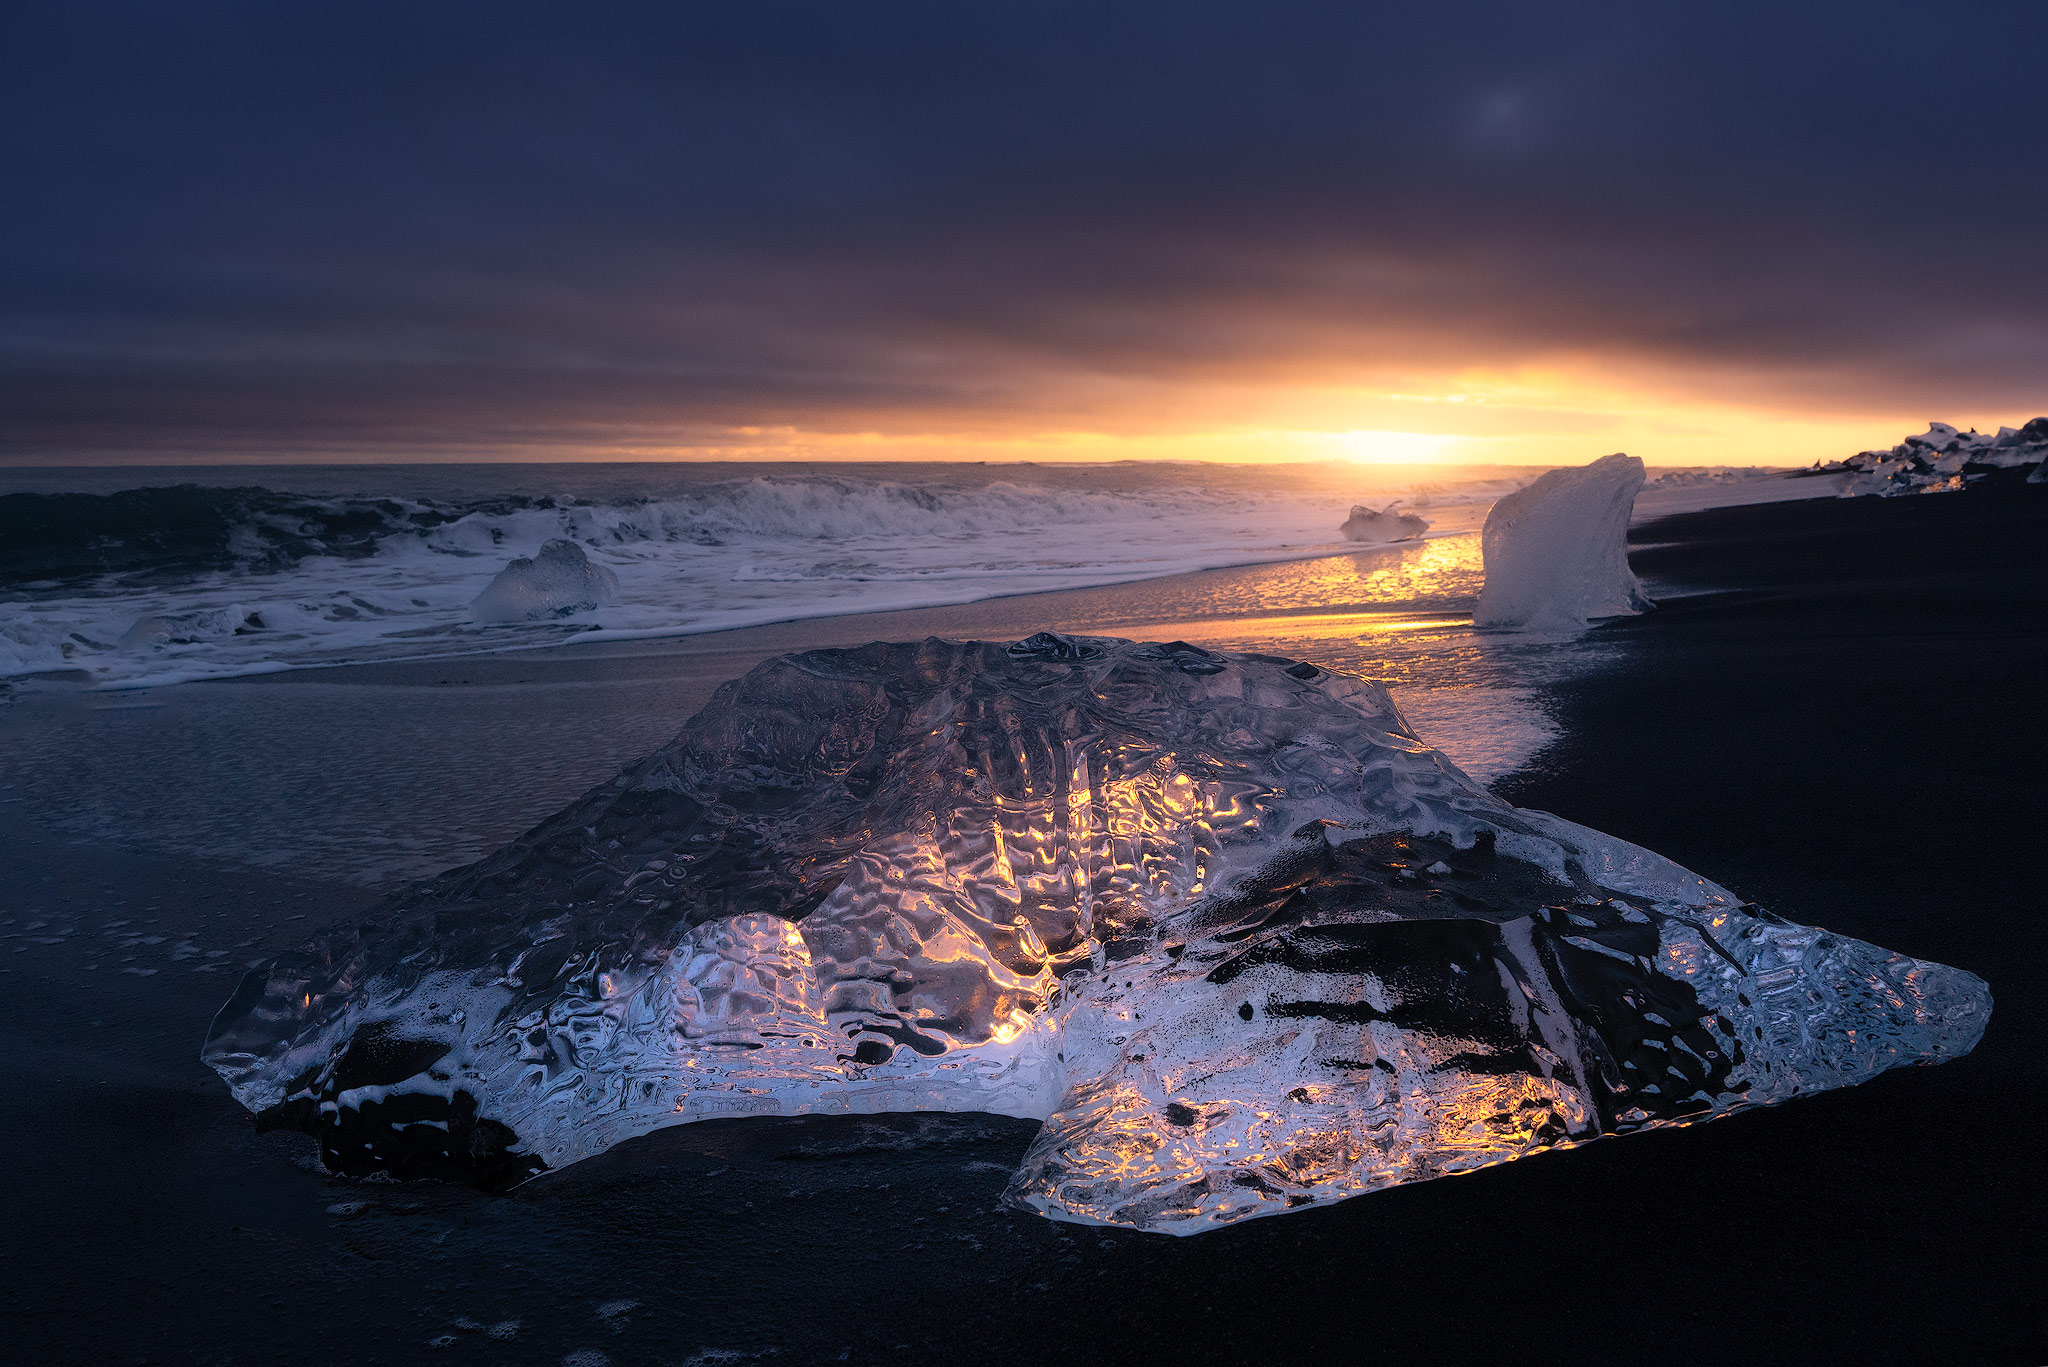 ice-beach-sunset-glow.jpg